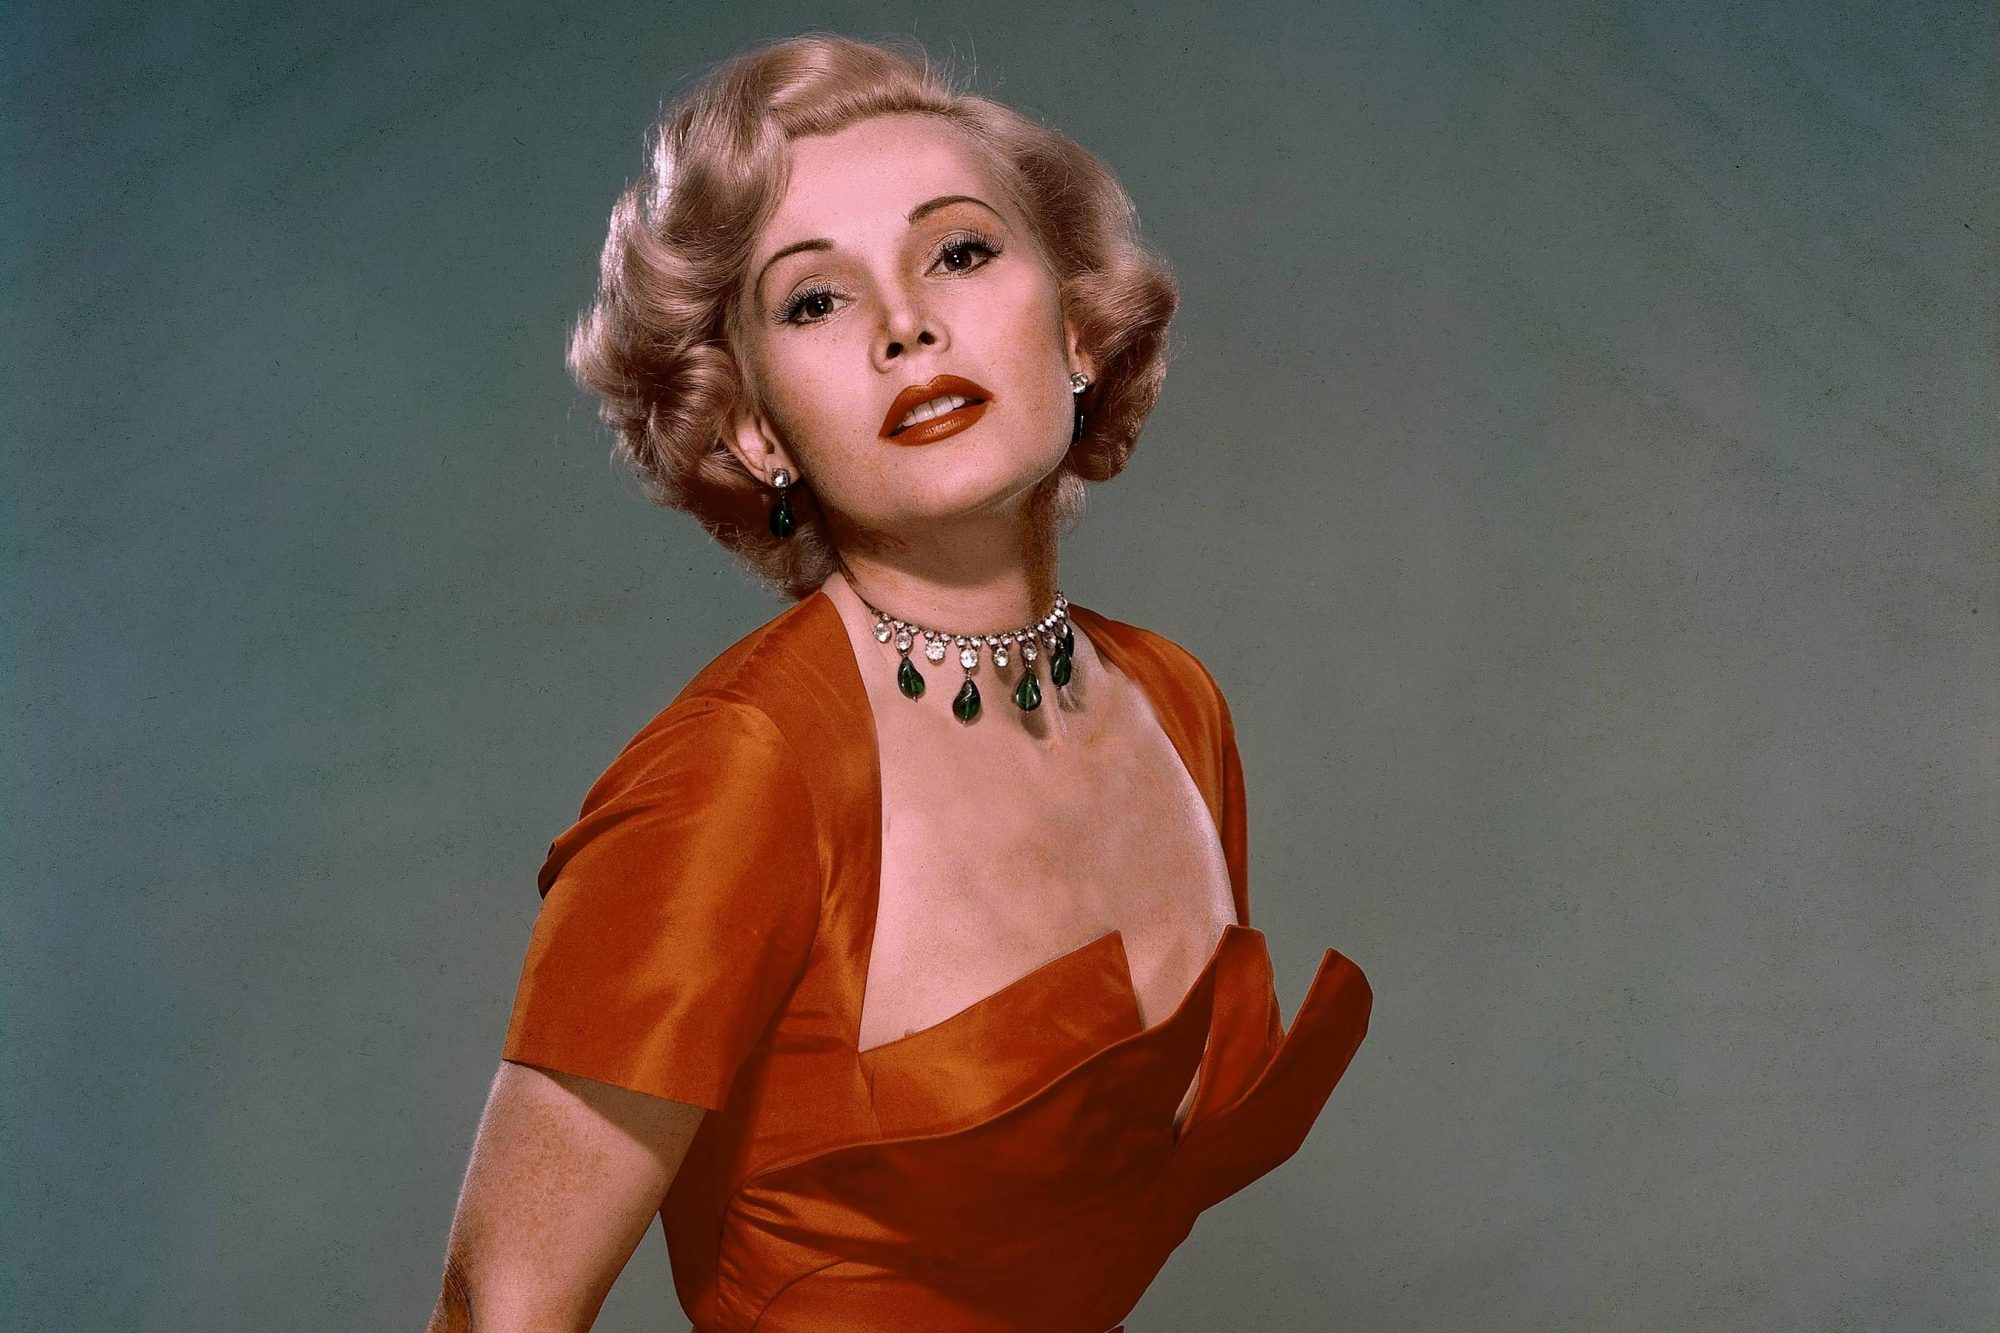 Zsa Zsa Gabor Around 1950-1955